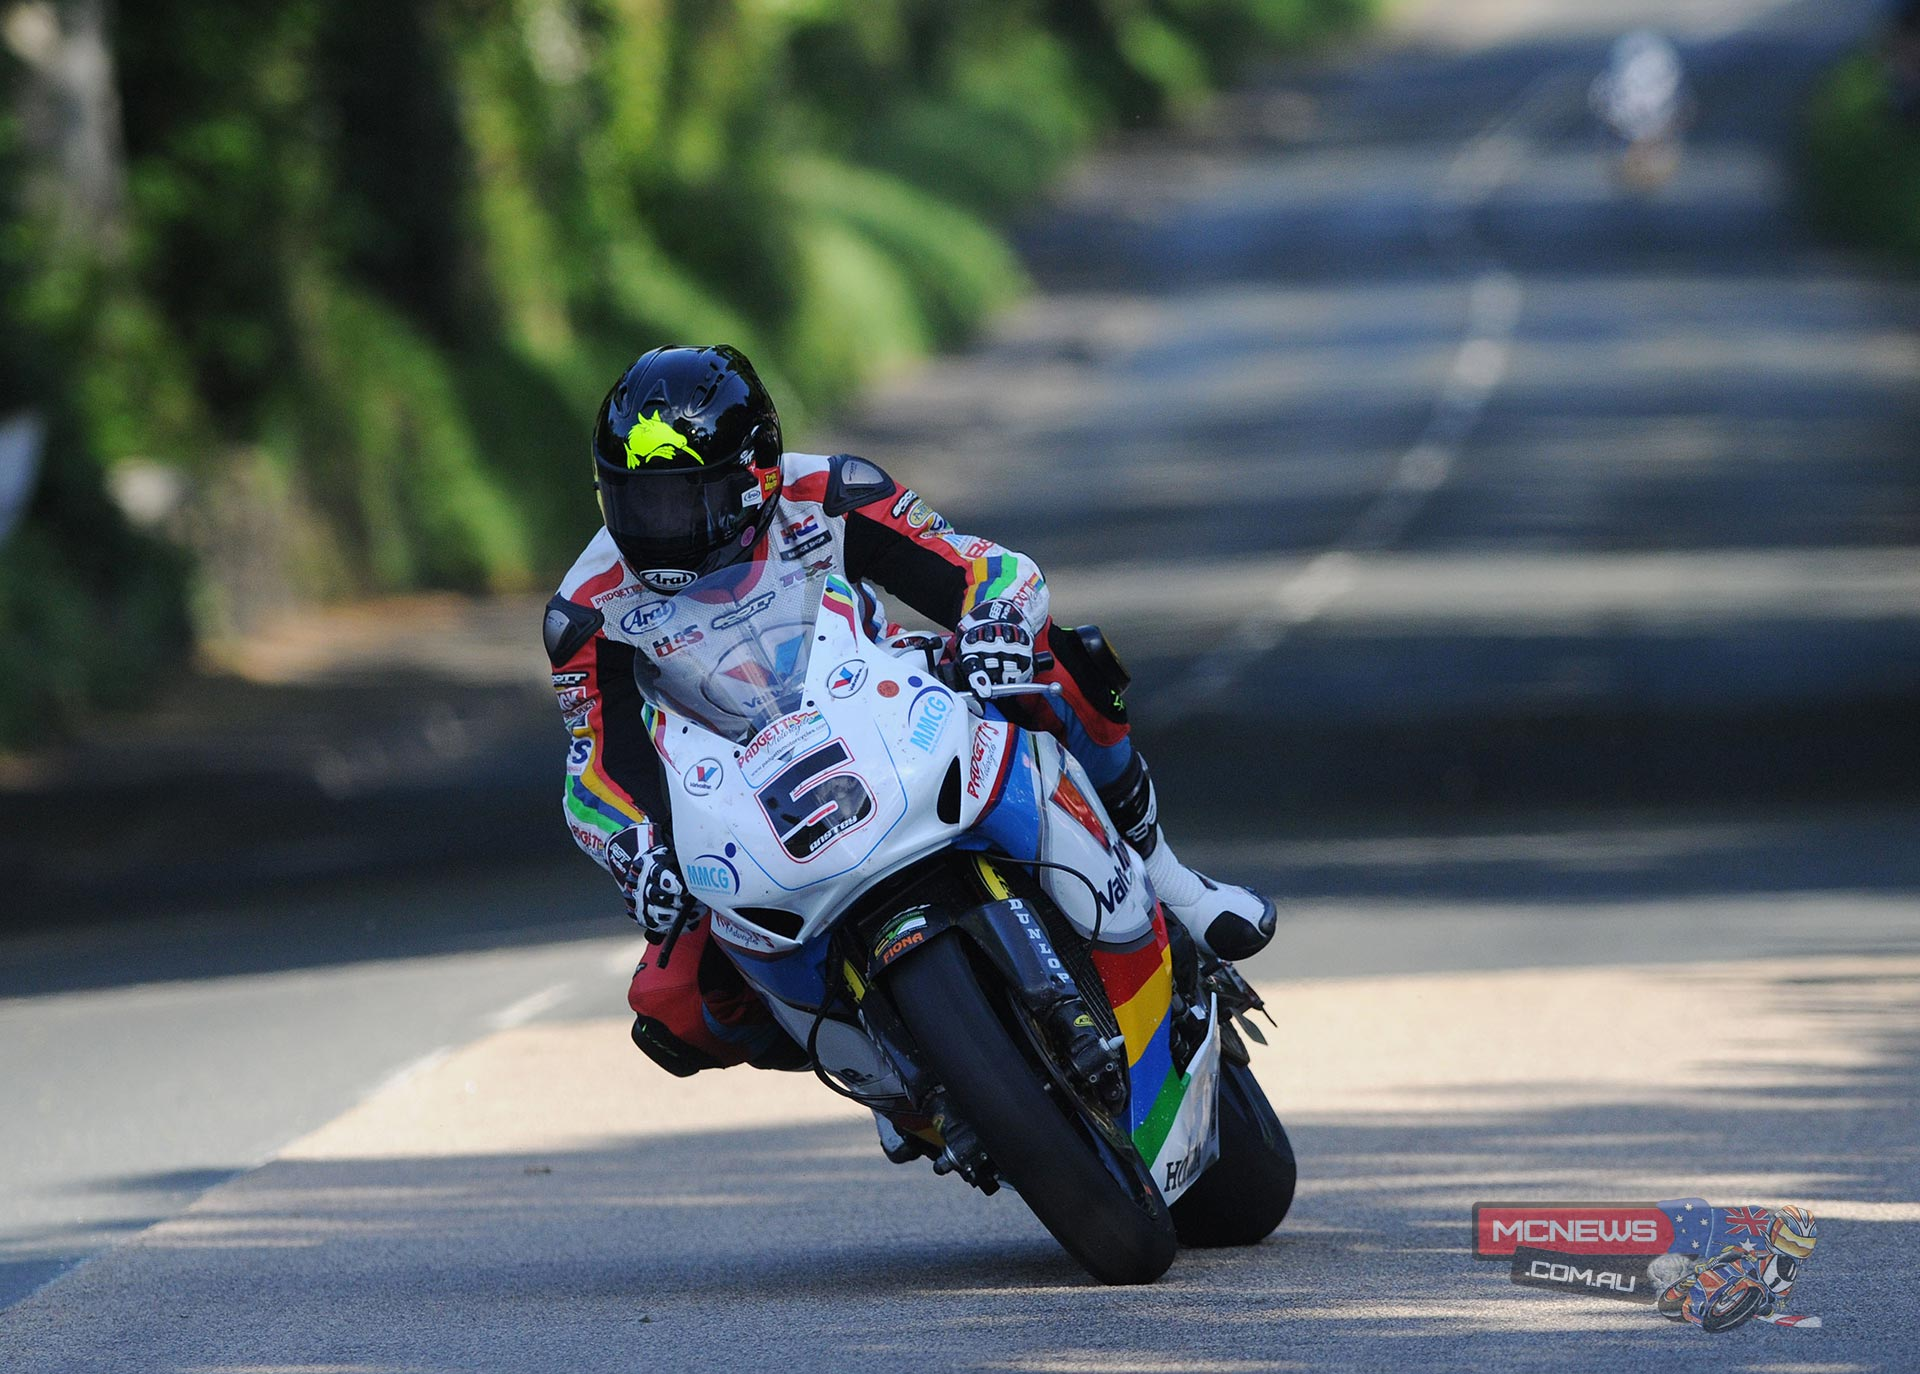 Clear blue skies and sunshine on Monday evening meant the 2014 Isle of Man TT Races, fuelled by Monster Energy, got underway at last and Bruce Anstey set the pace at 127.473mph just edging out fellow Honda rider John McGuinness whose best lap was 126.355mph.